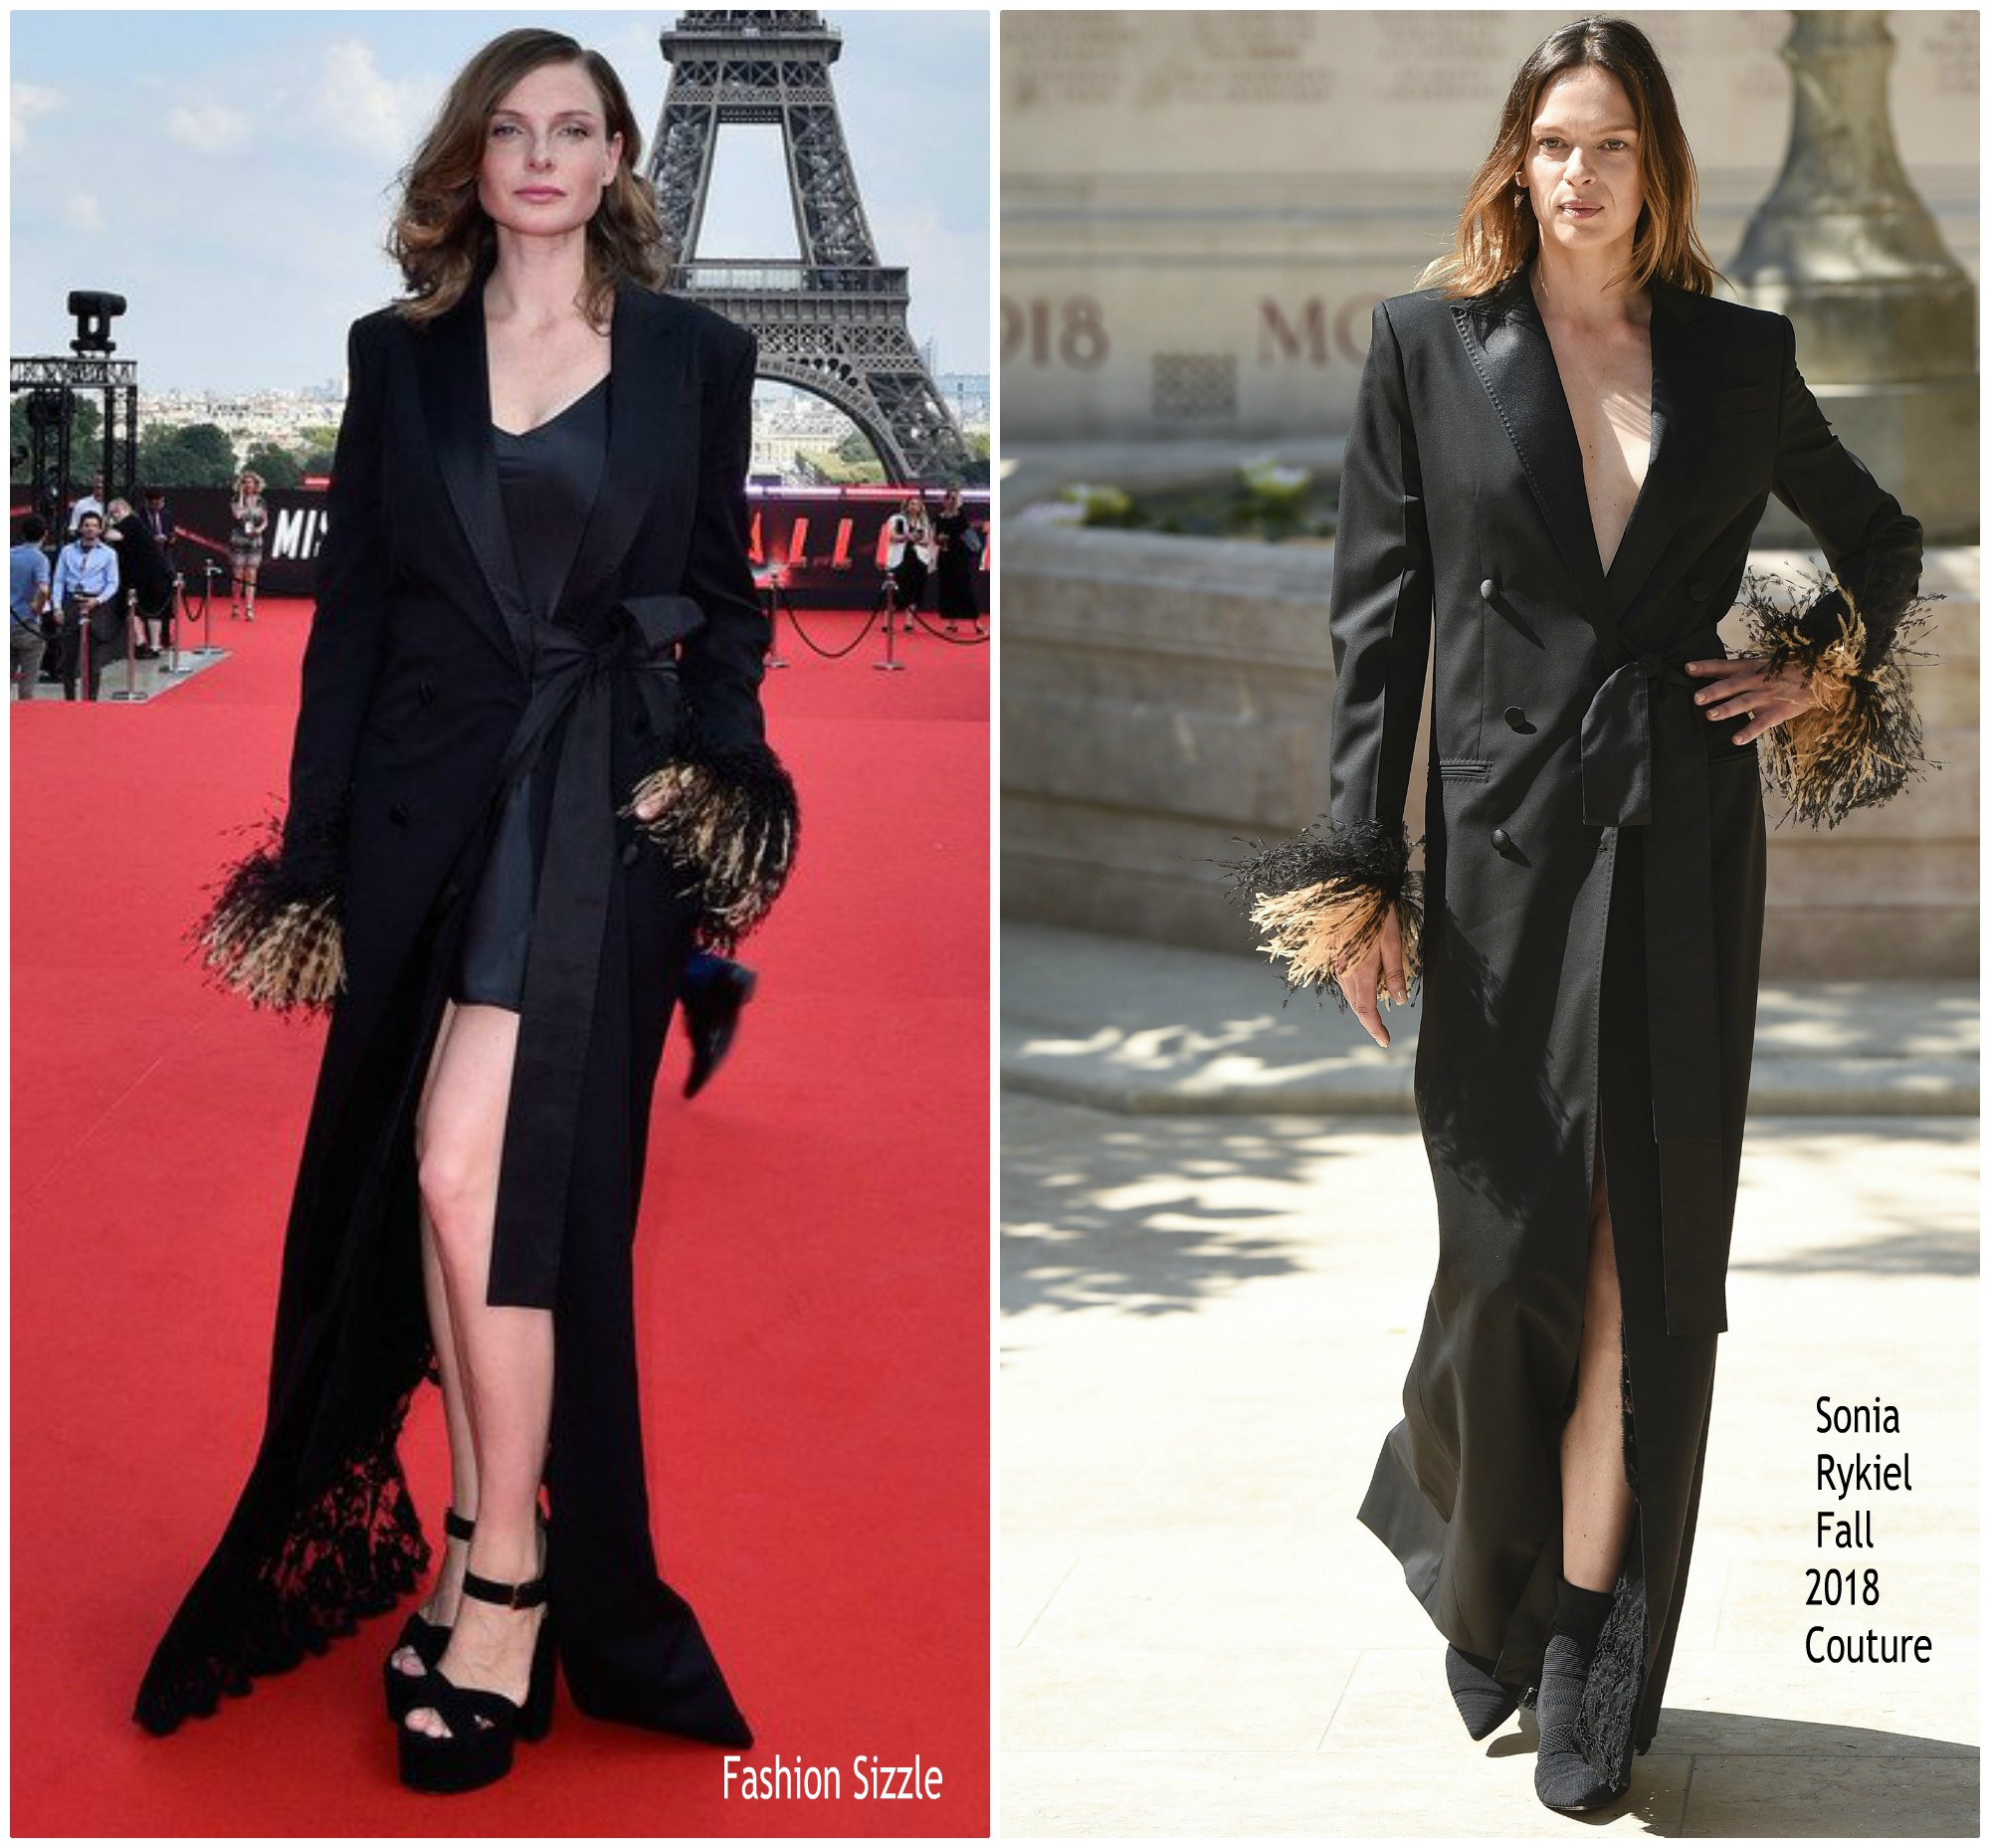 rebecca-ferguson-in-sonia-rykiel-haute-couture-mission-impossible-fallout-paris-premiere